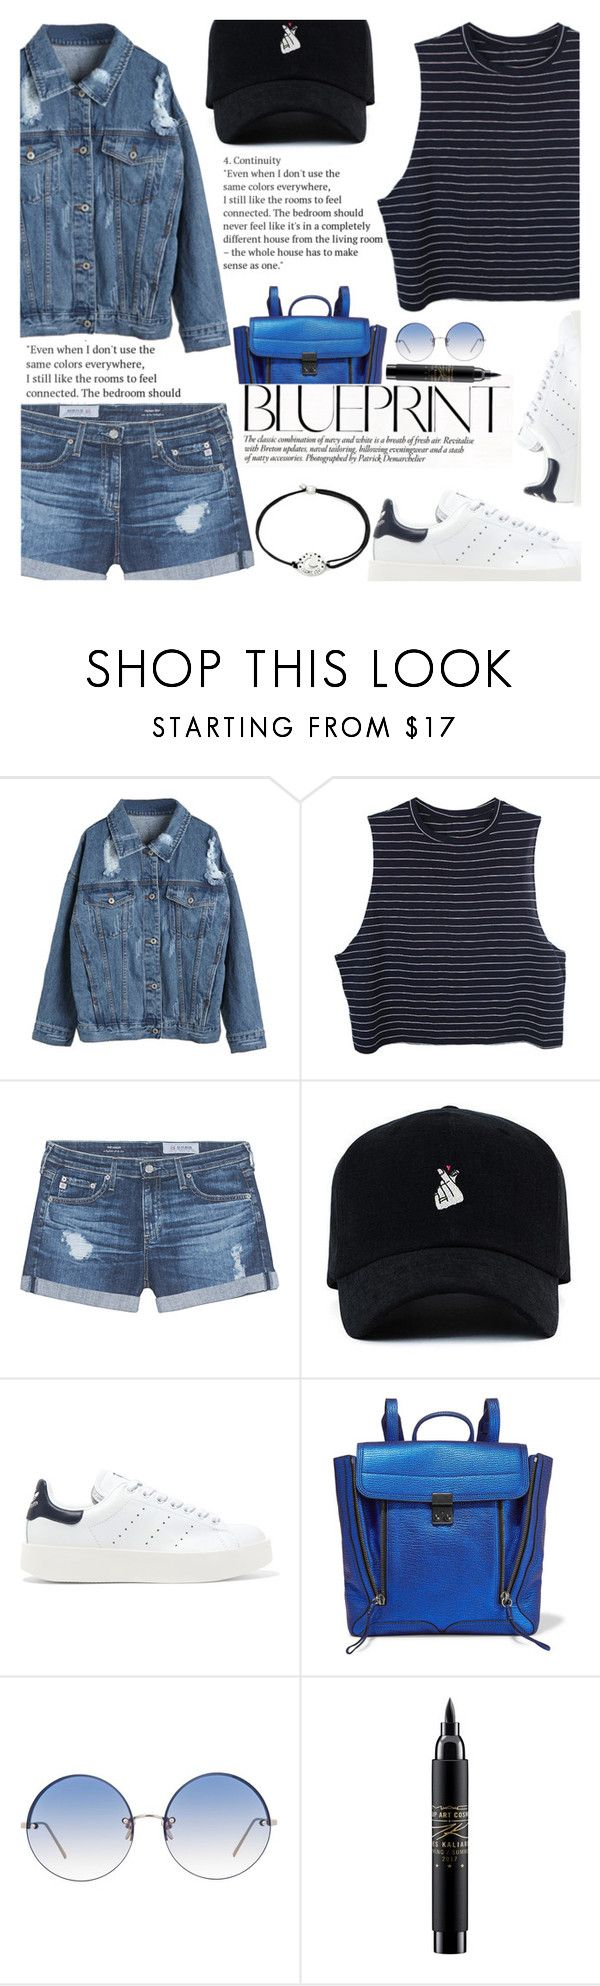 """Untitled #2210"" by anarita11 ❤ liked on Polyvore featuring WithChic, AG Adriano Goldschmied, adidas Originals, 3.1 Phillip Lim, Linda Farrow, MAC Cosmetics and Alex and Ani"